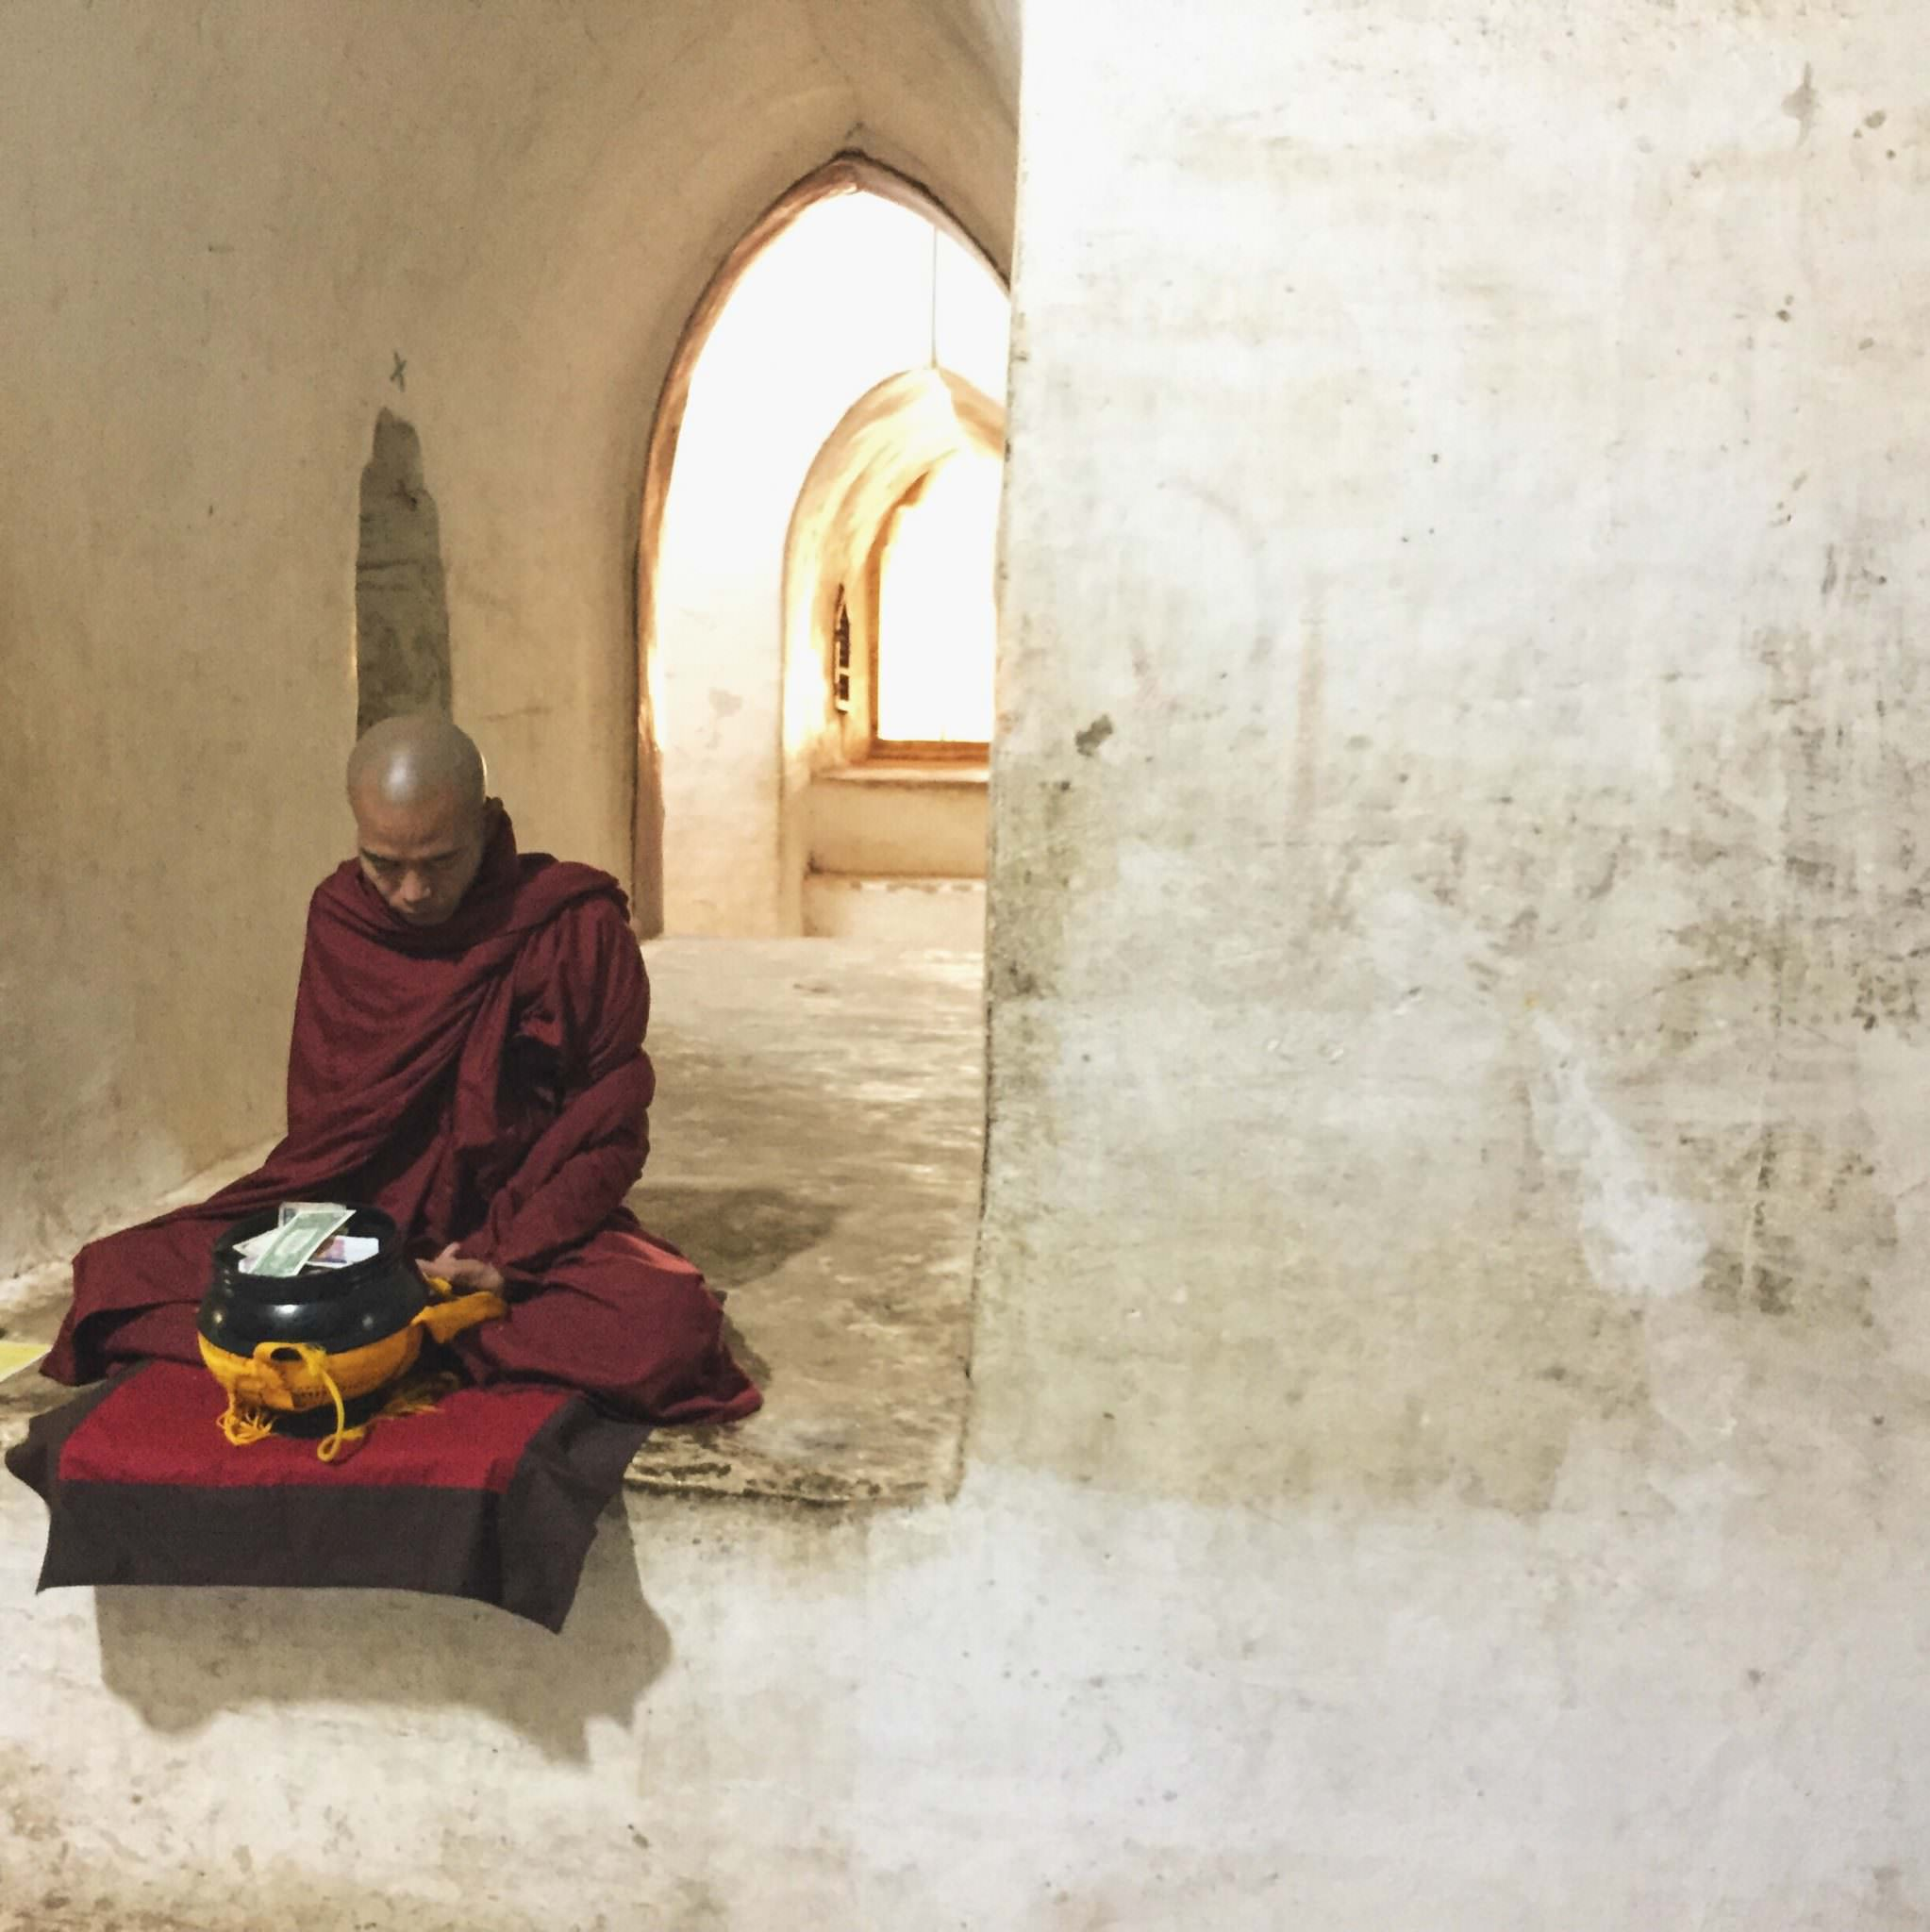 A Buddhist monk prays inside the hallways of the temple, accepting offerings of money or food. © 2015 Gail Jessen